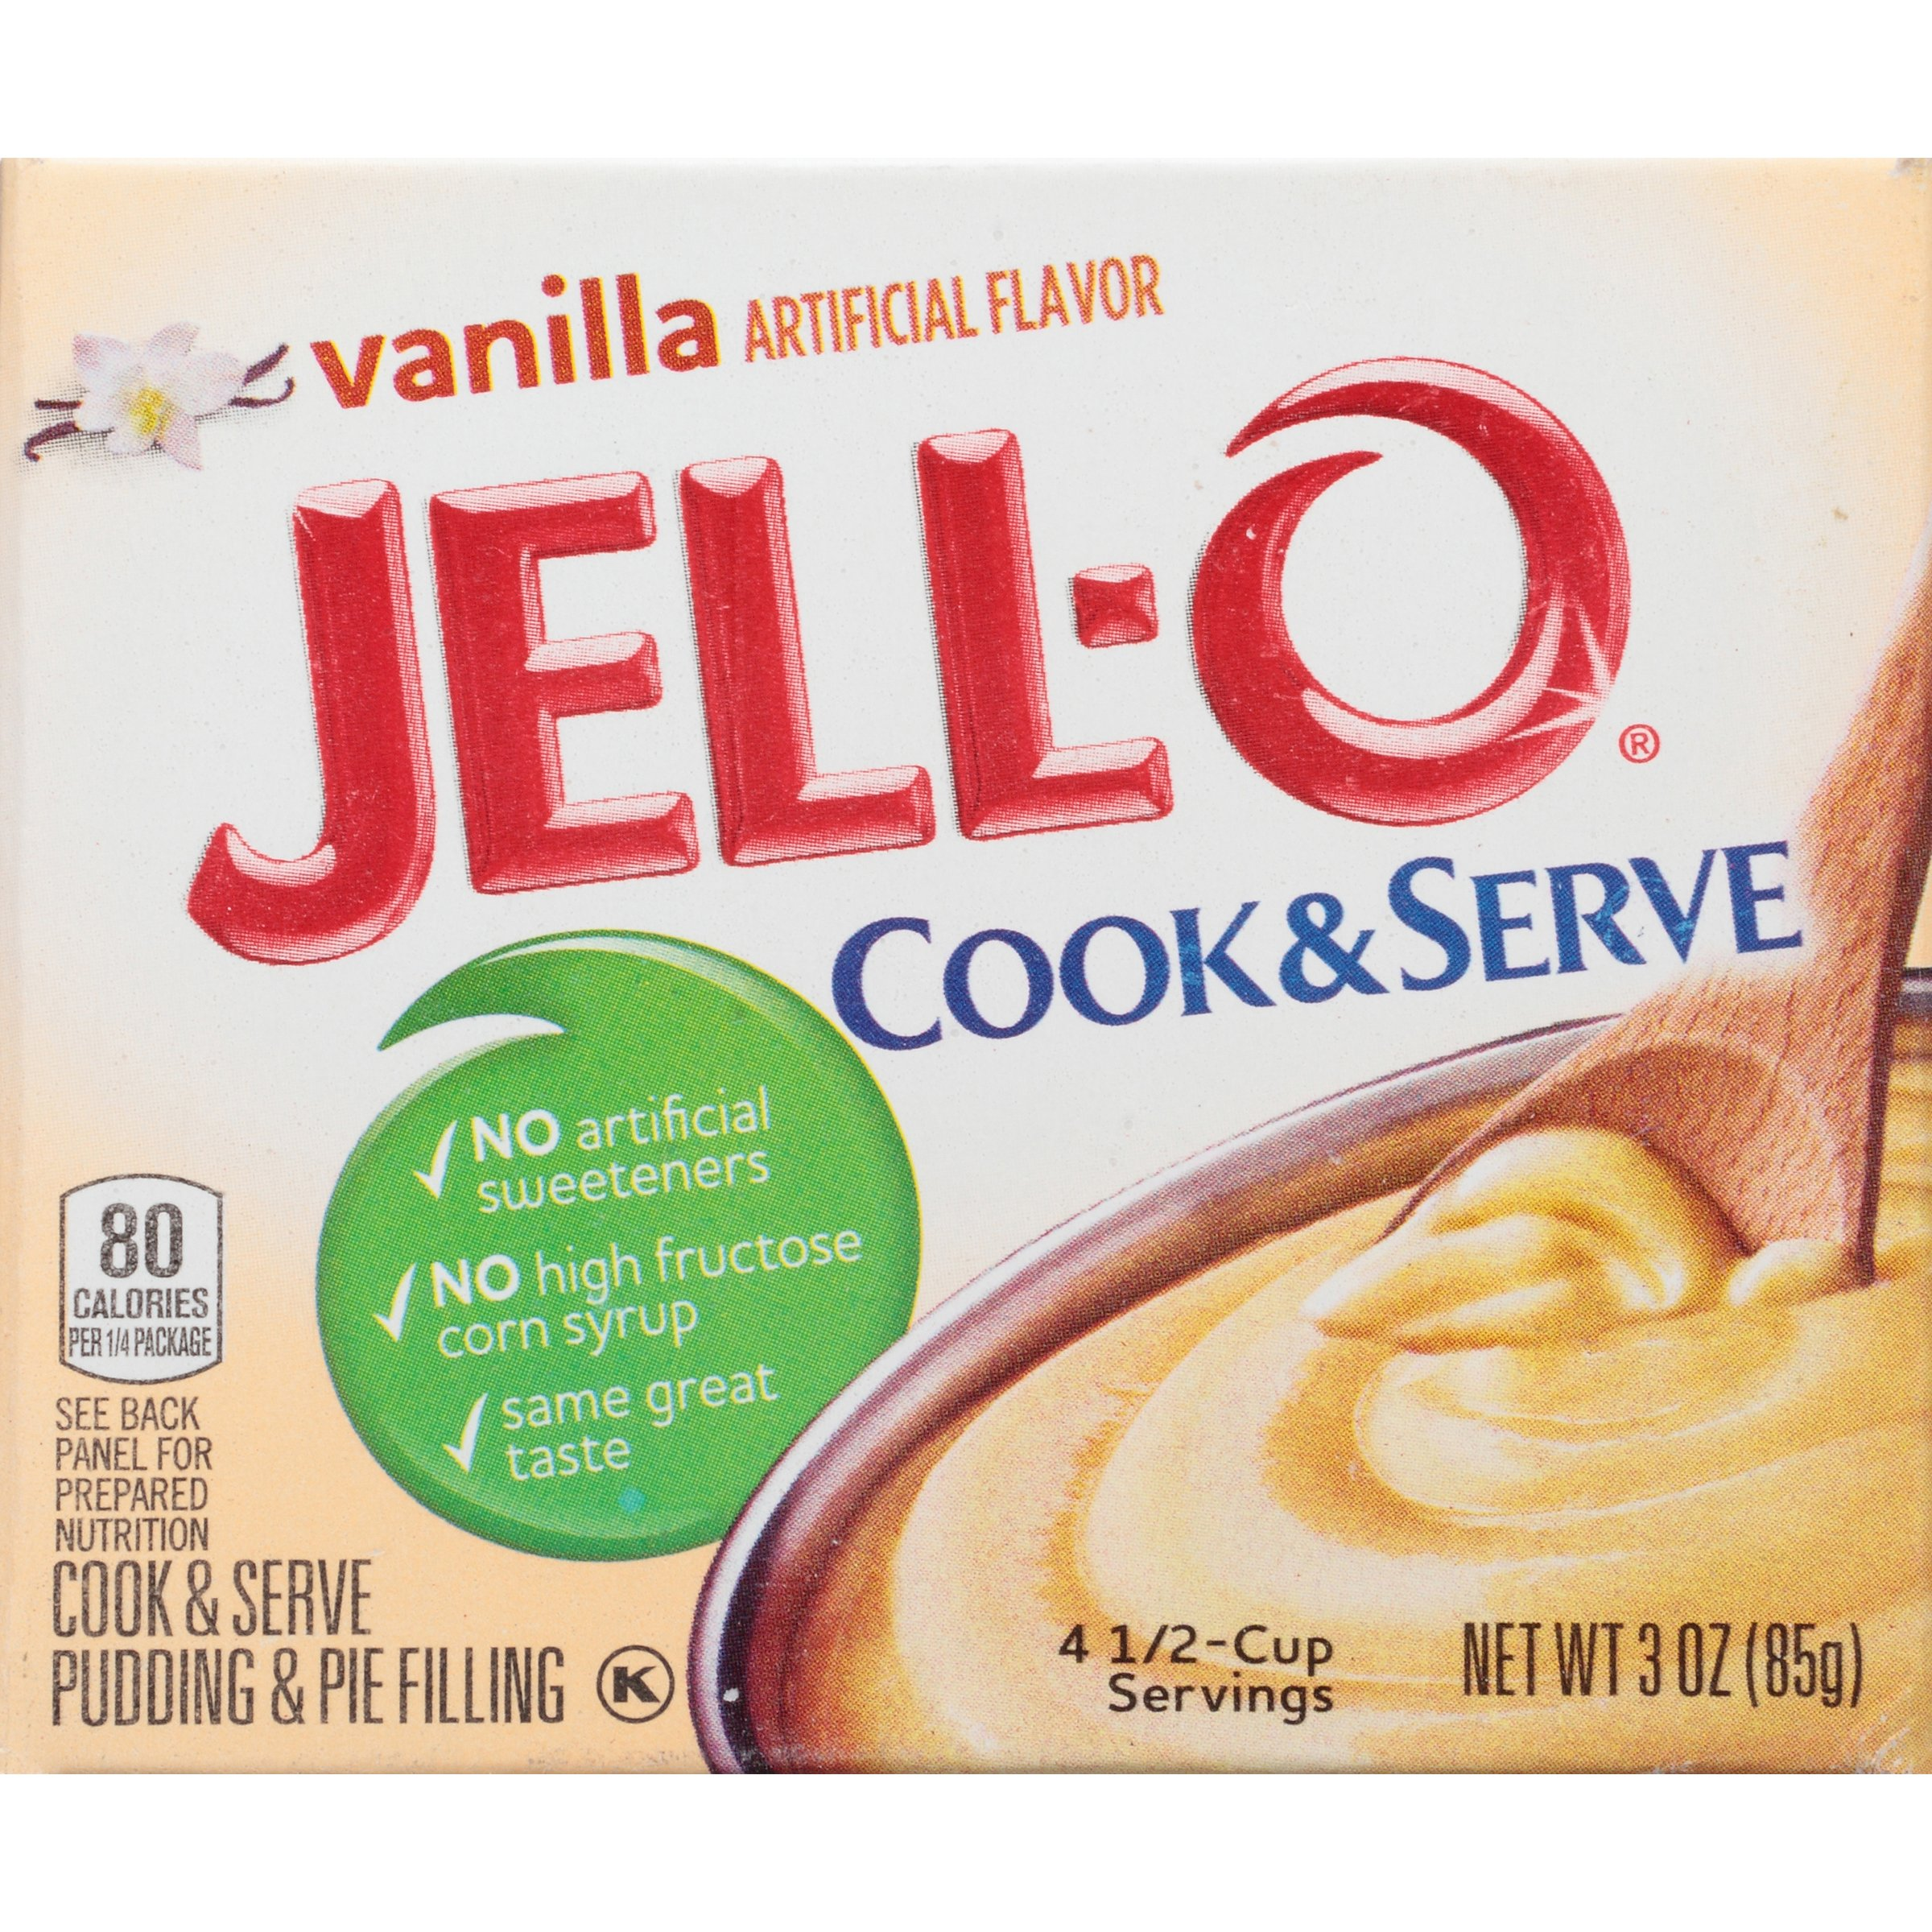 JELL-O Cook & Serve Pudding & Pie Filling, Vanilla, 3 Ounce Boxes